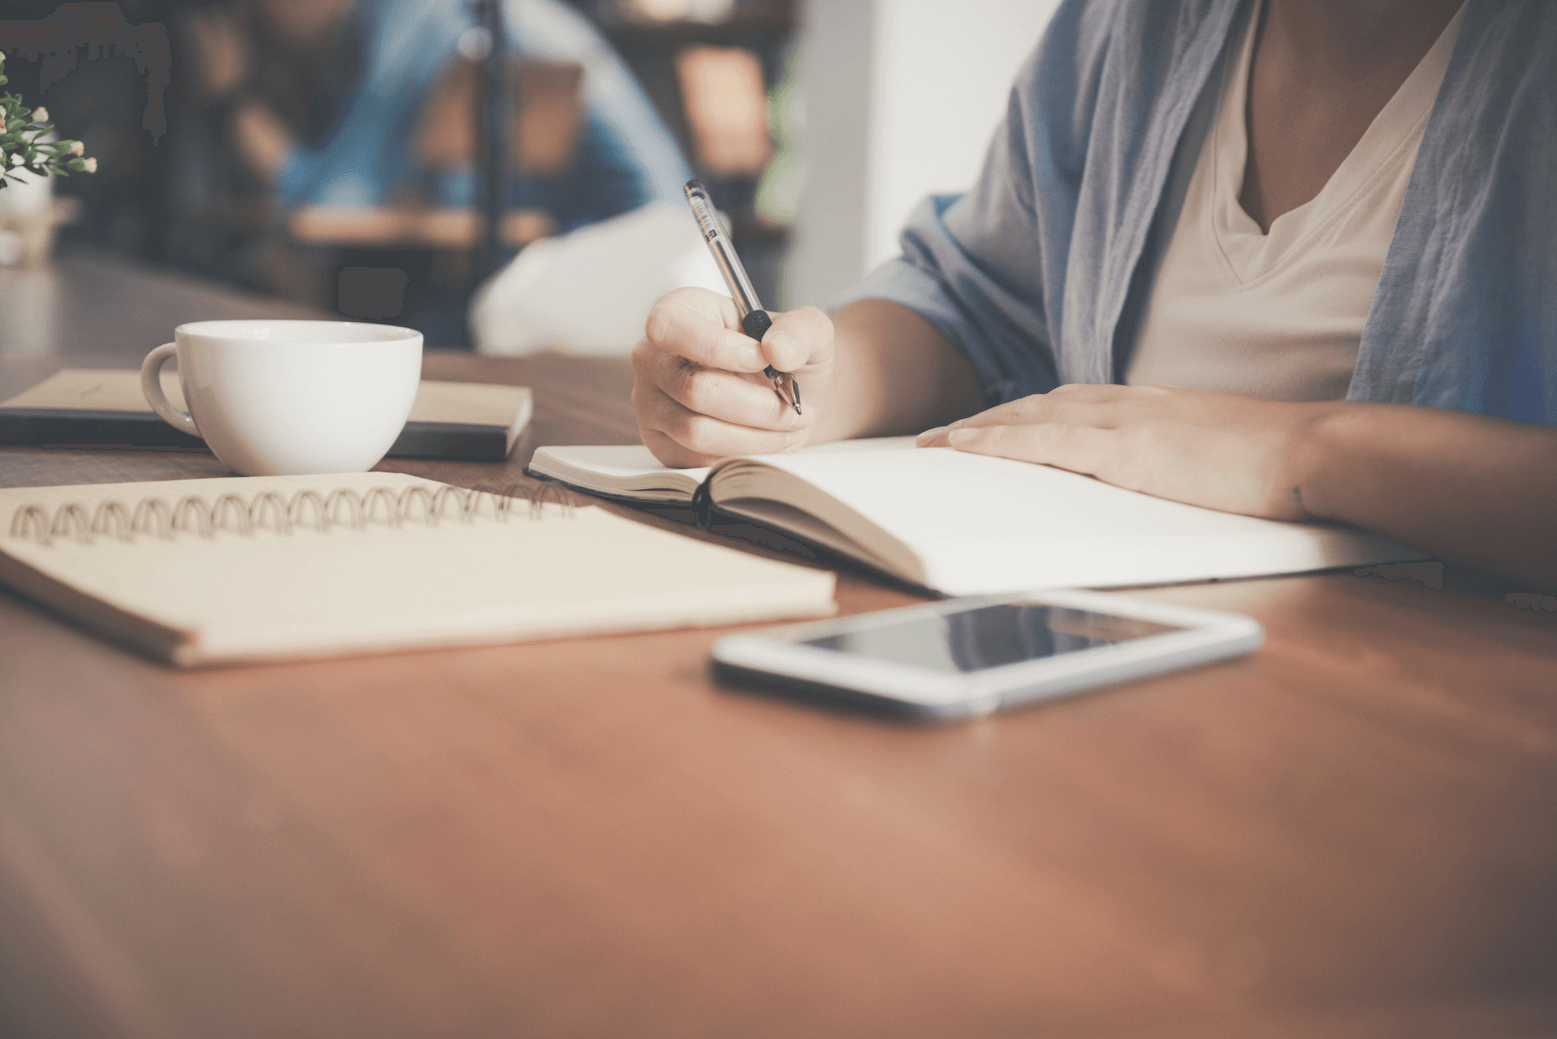 Proposal and award writing in a notebook